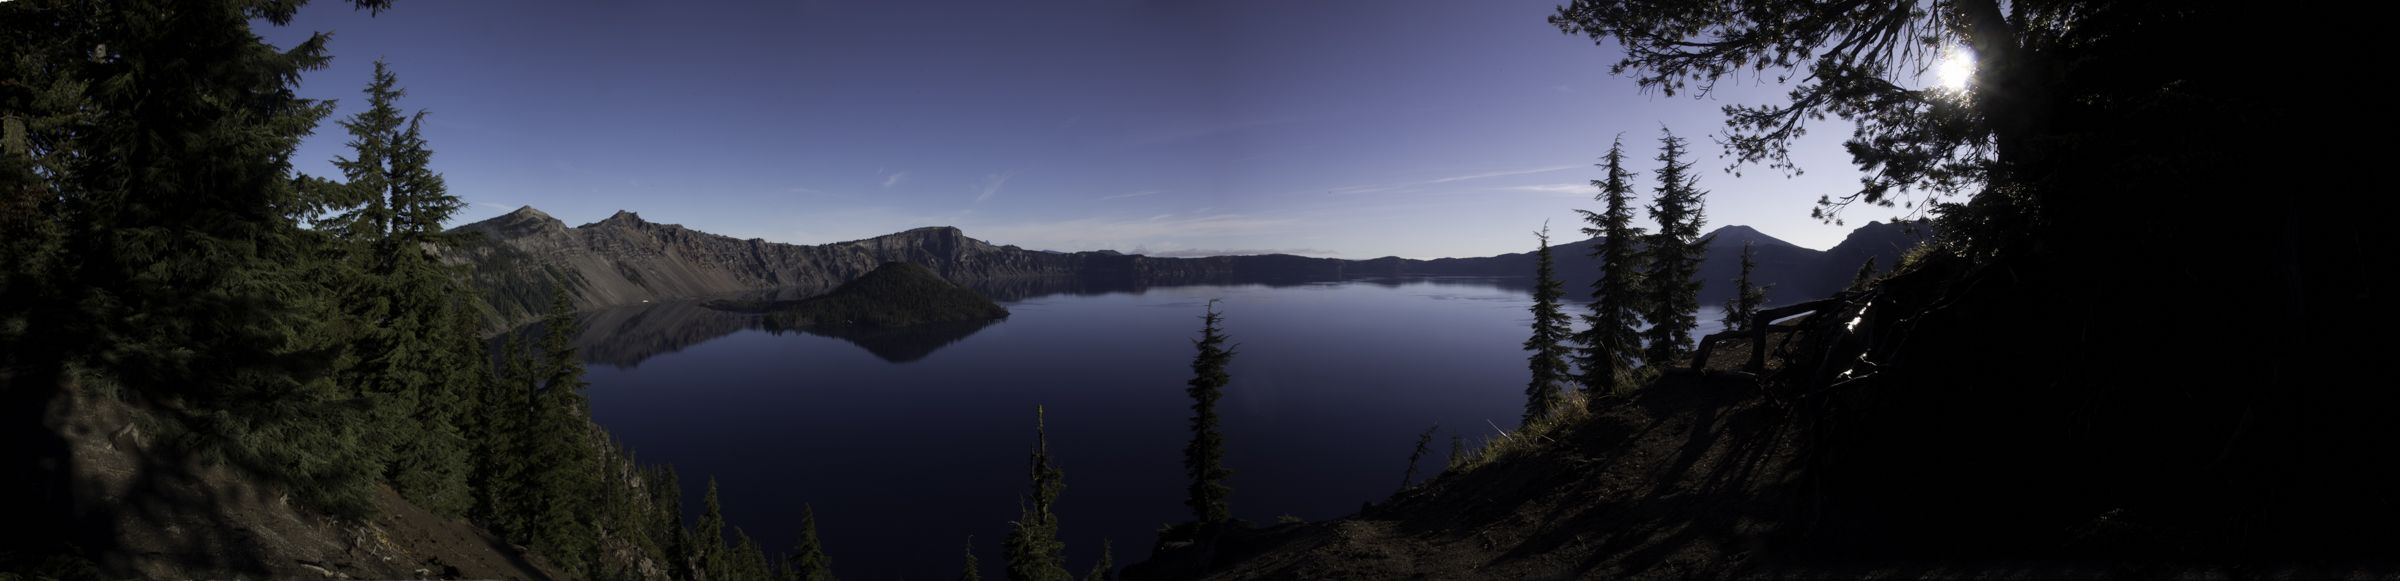 crater.lake_Panorama3.jpg